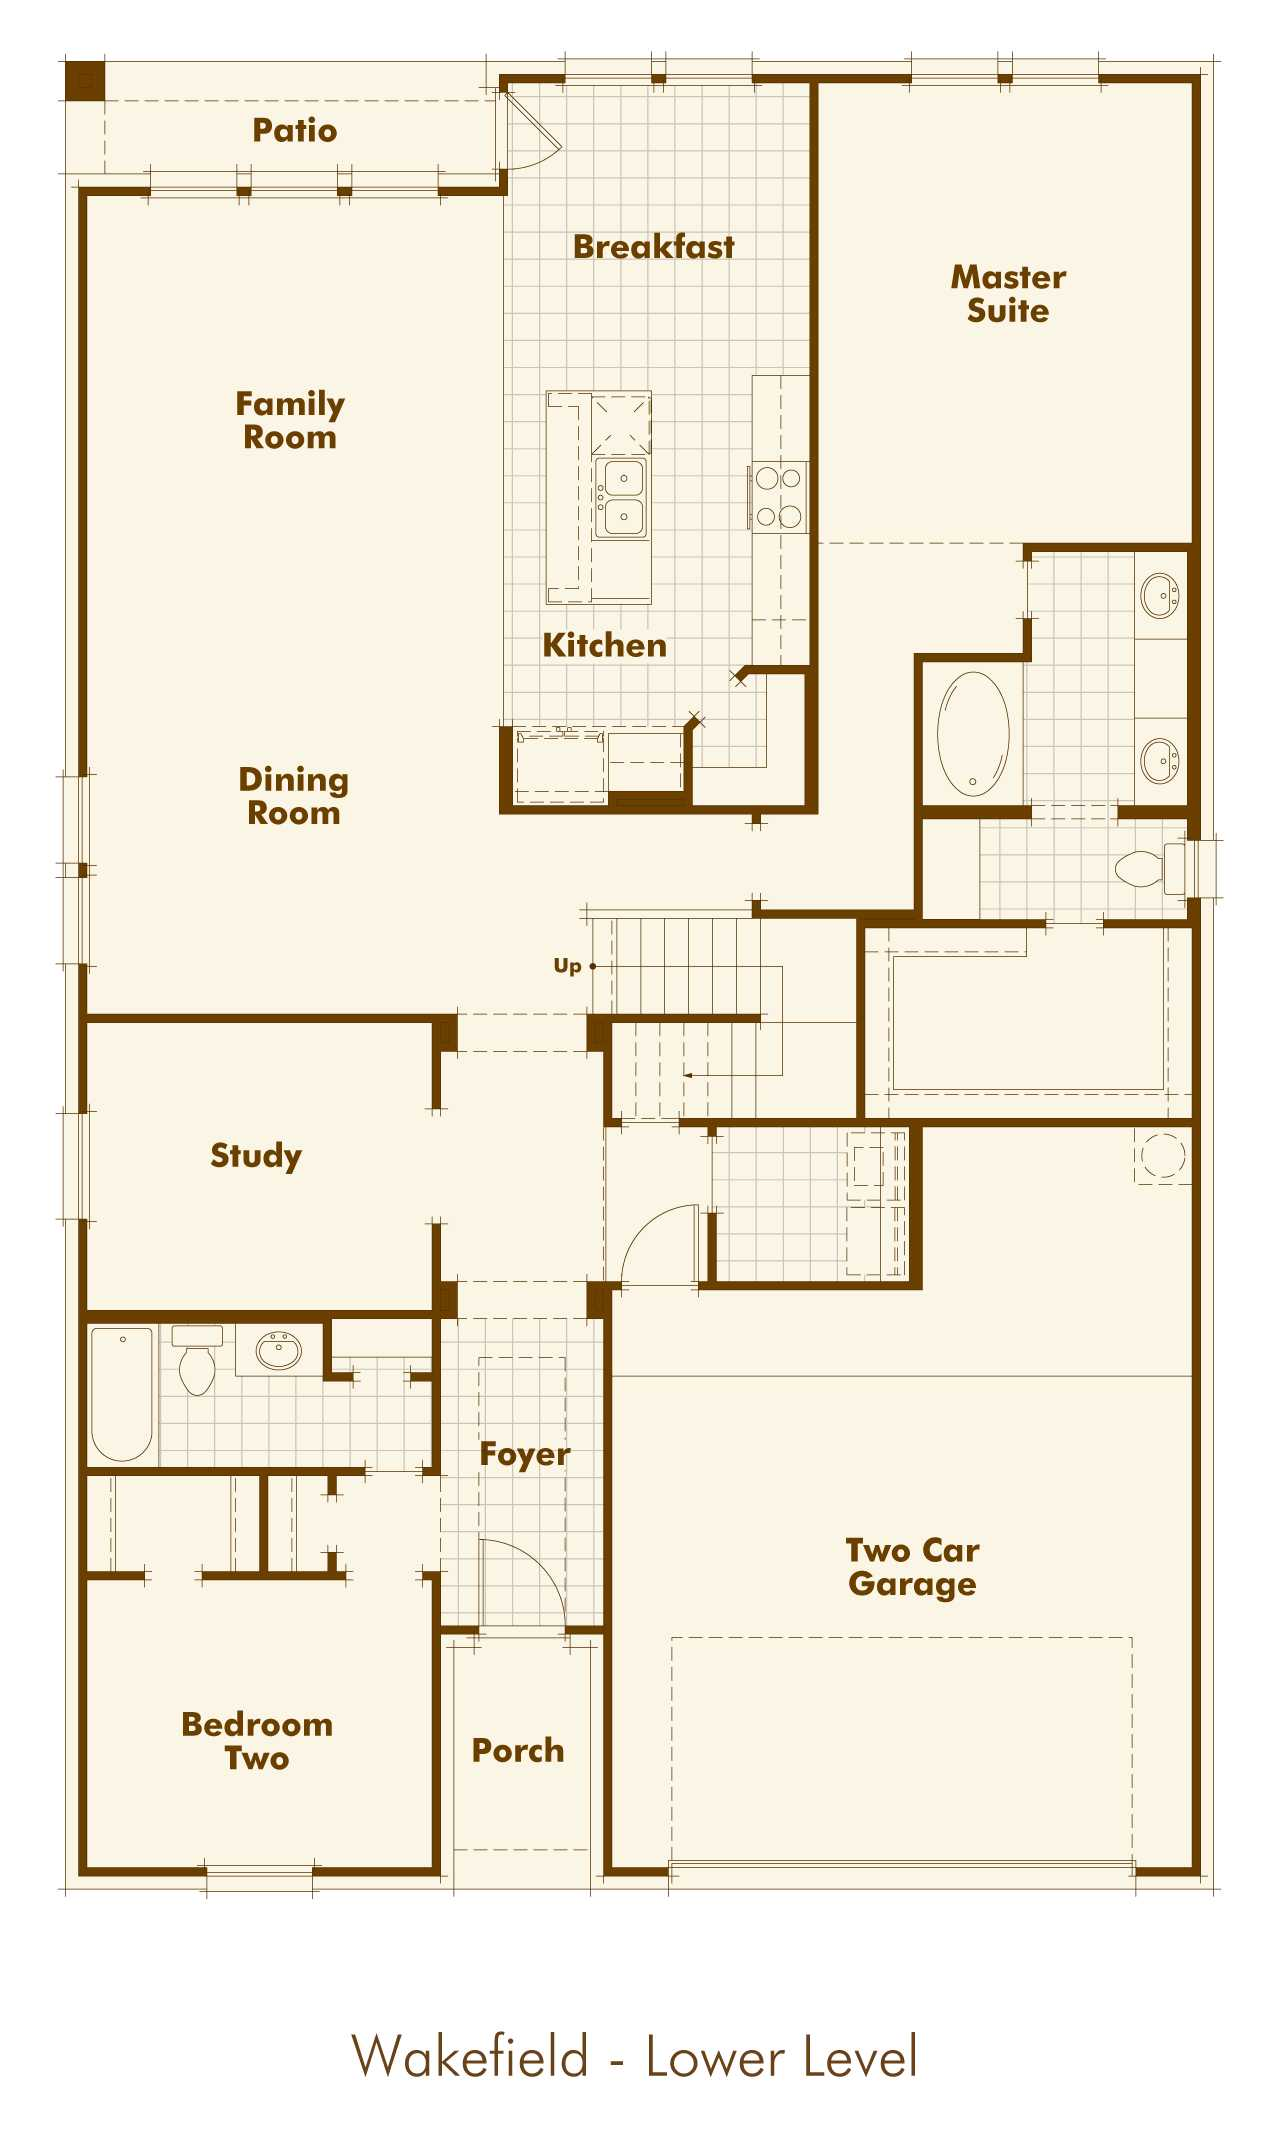 Wakefield Archives Floor Plan Friday